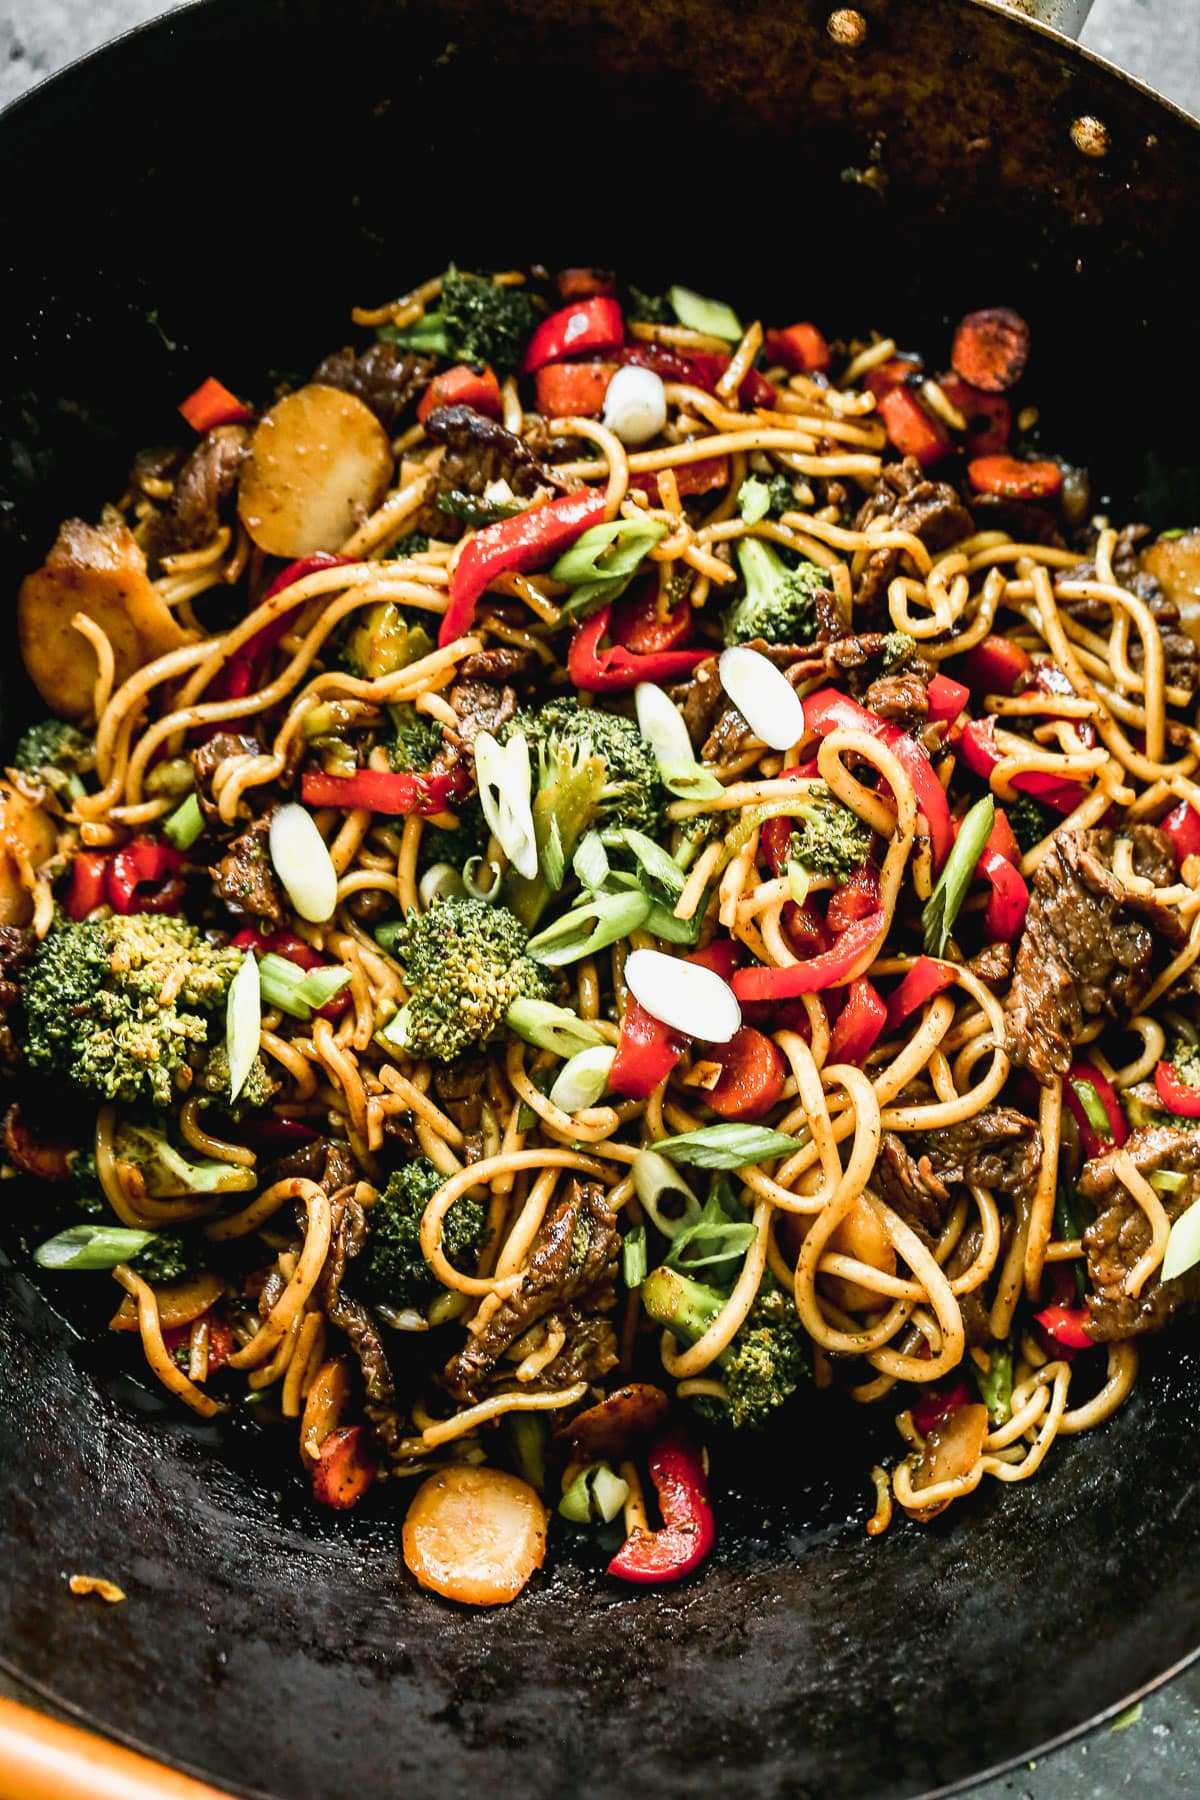 beef lo mein and vegetables cooking in skillet